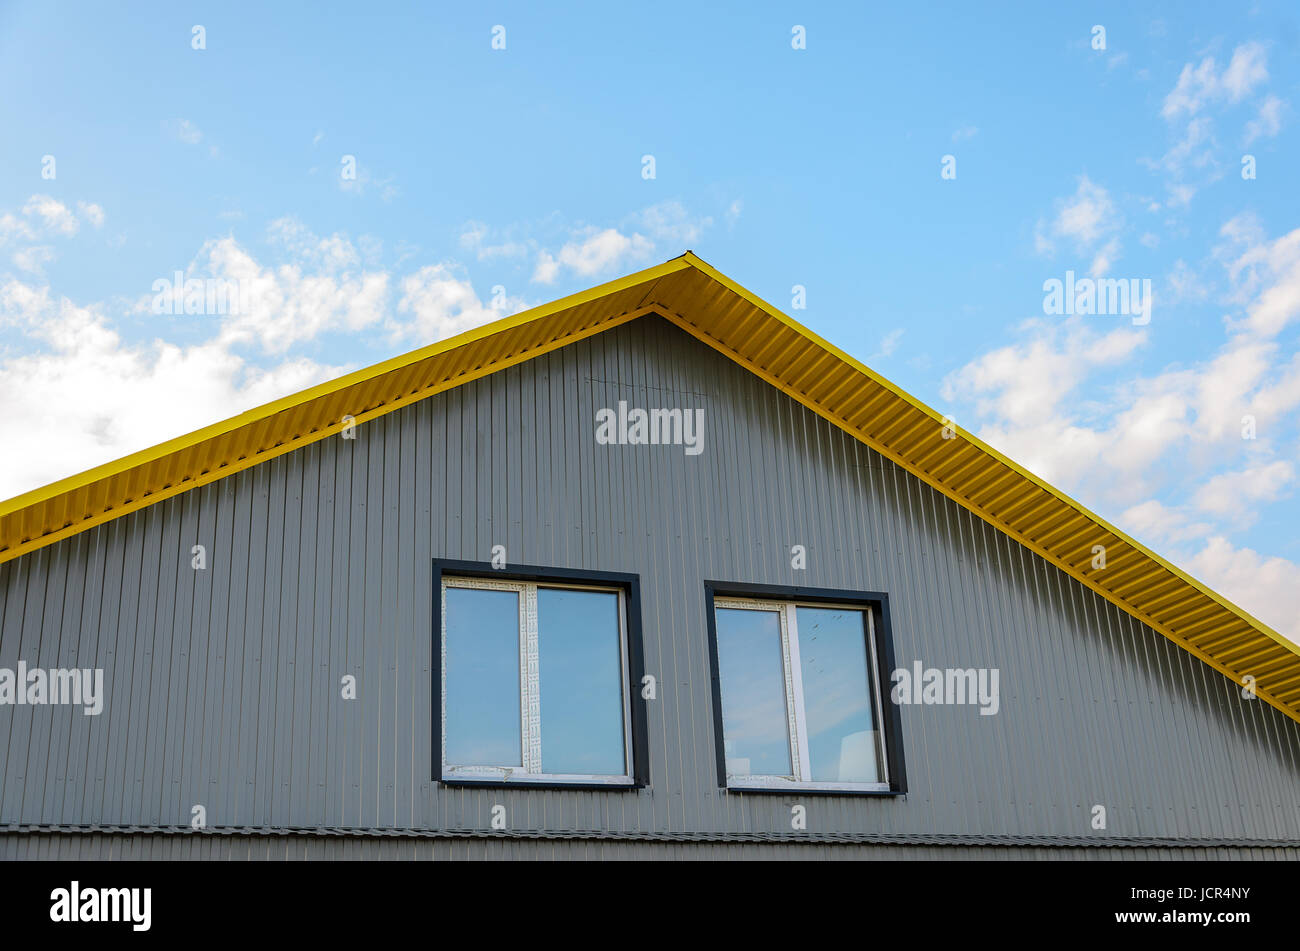 Corrugated metal facade. Pediment with two windows - Stock Image